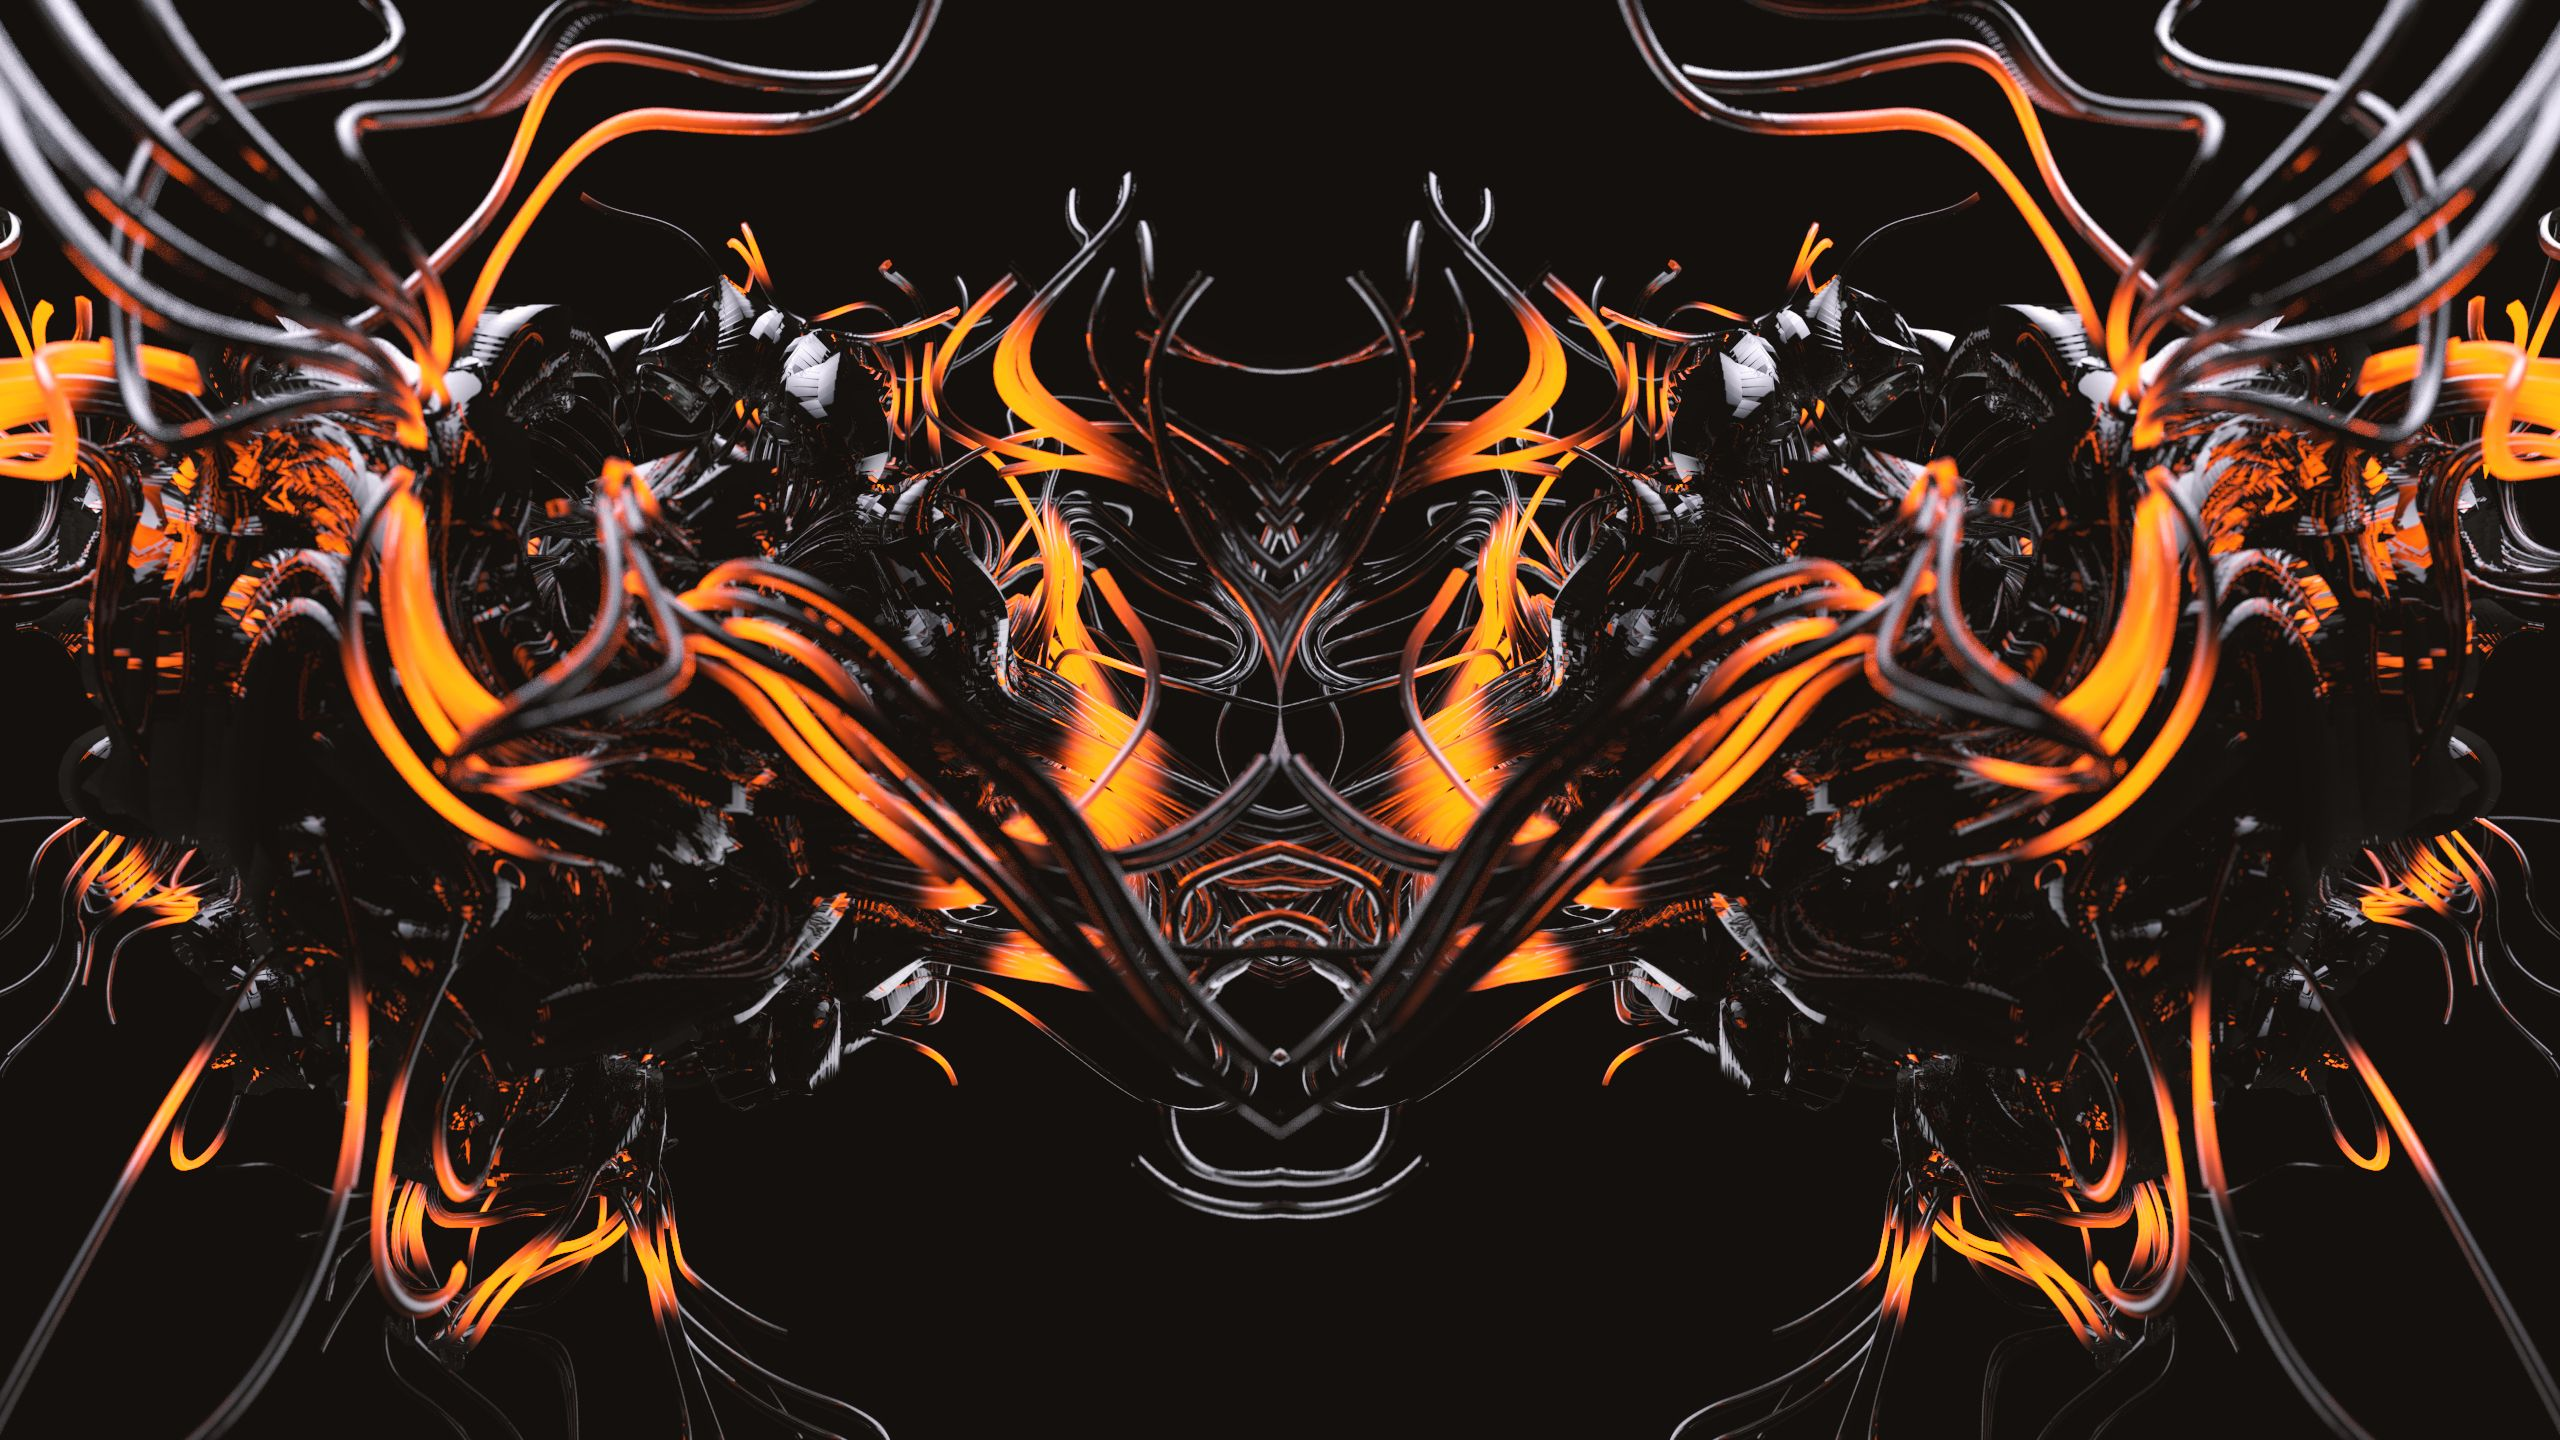 The Bull Keyshot 2560x1440 Desktop Background Pictures Background Pictures Abstract Wallpaper